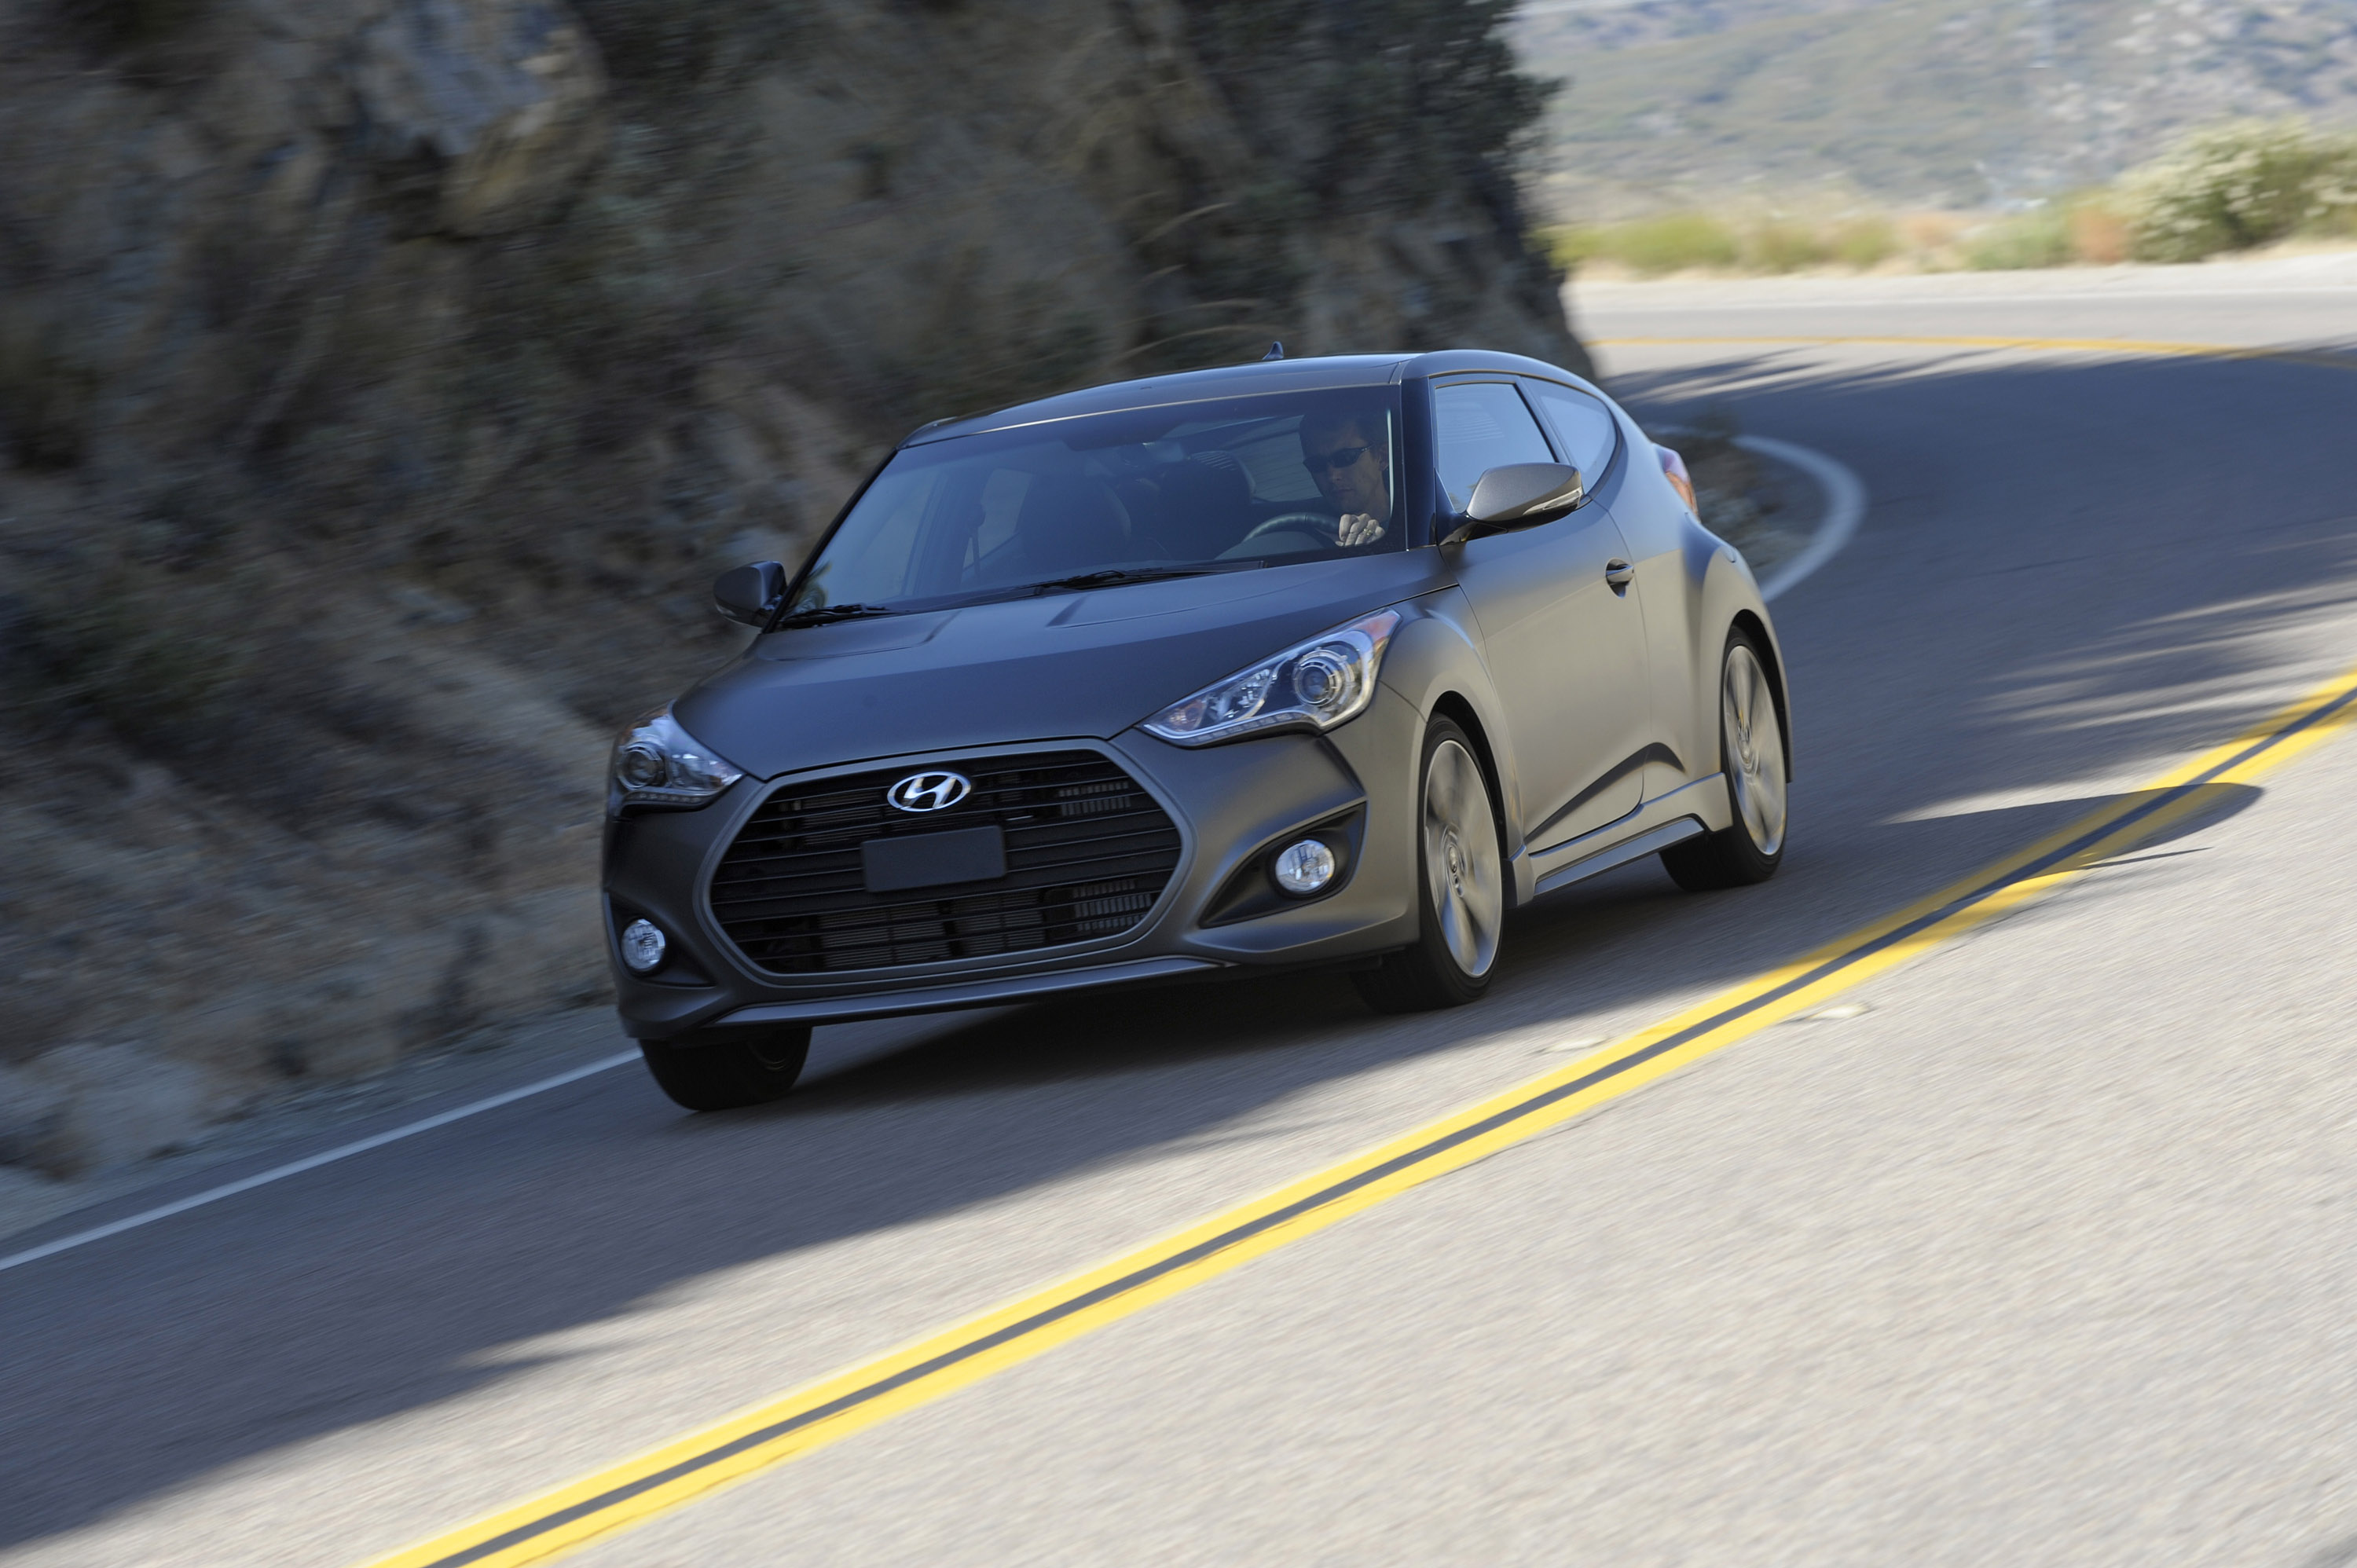 2013 Hyundai Veloster Turbo Hd Pictures Carsinvasion Com